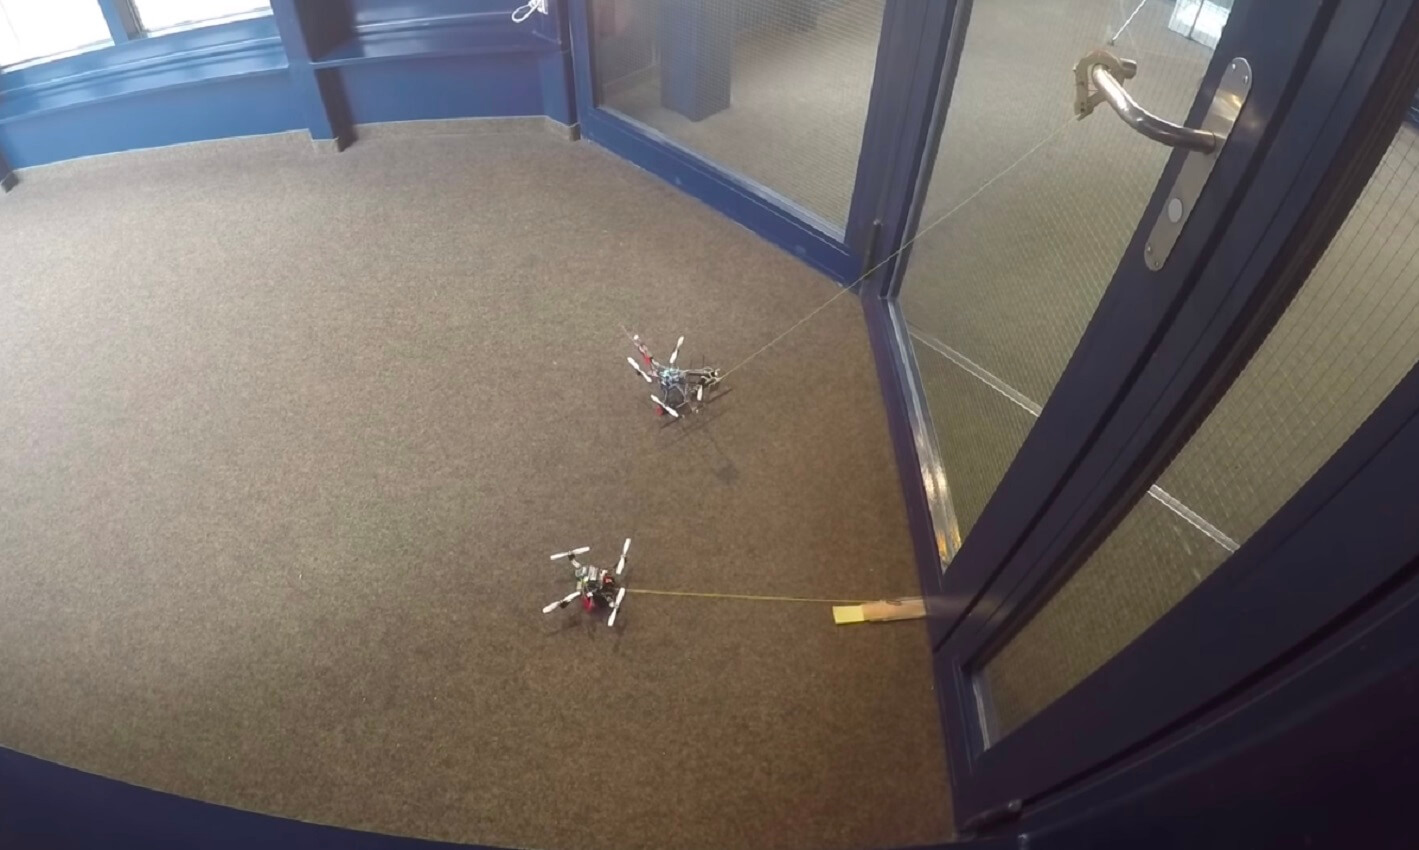 wasp drones open doors